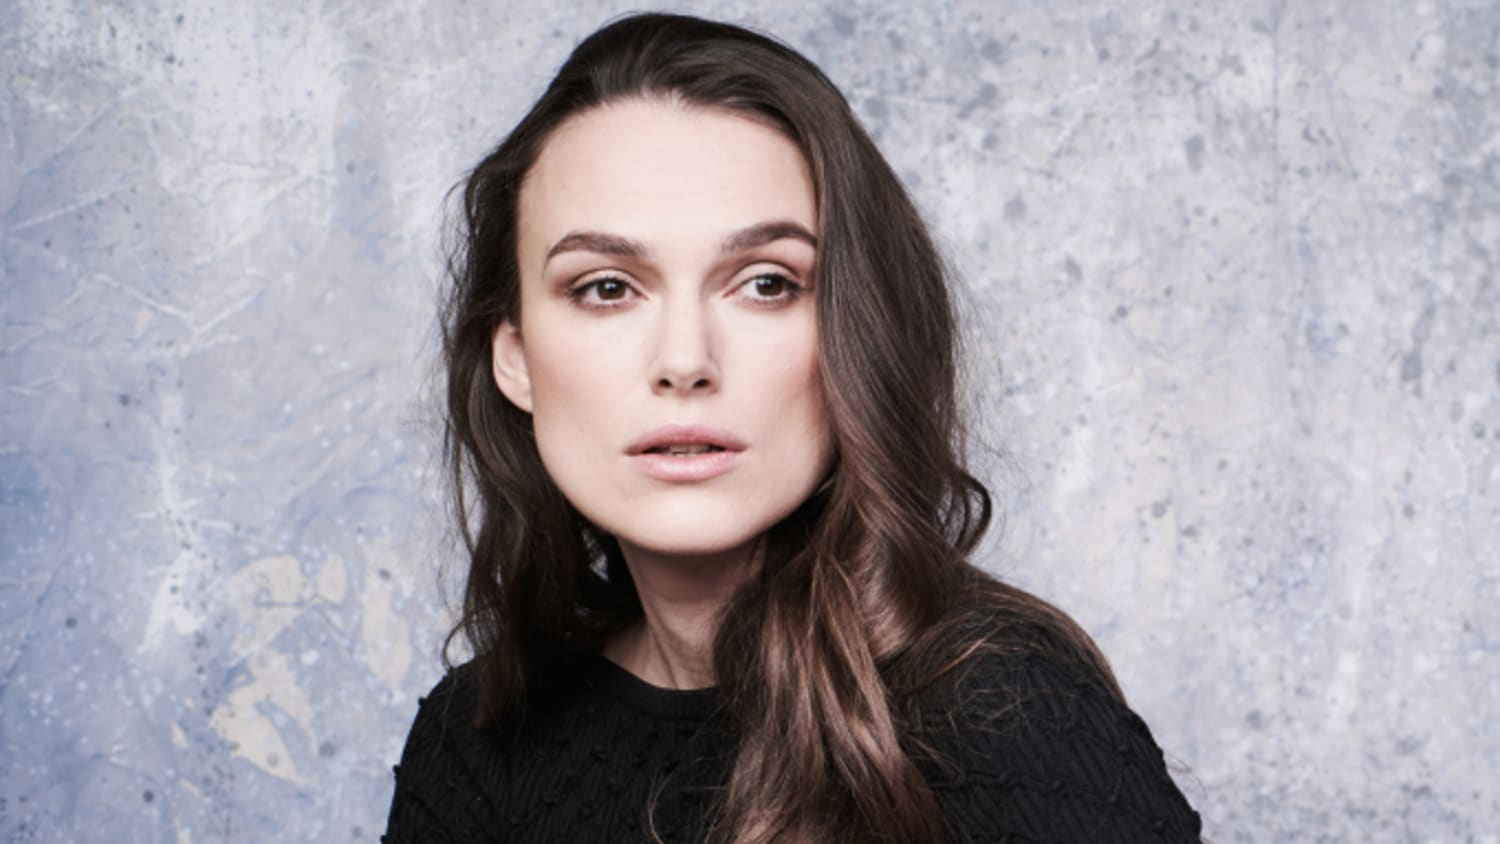 keira-knightley-stars-in-the-essex-serpent-for-apple-tv-20200824-1